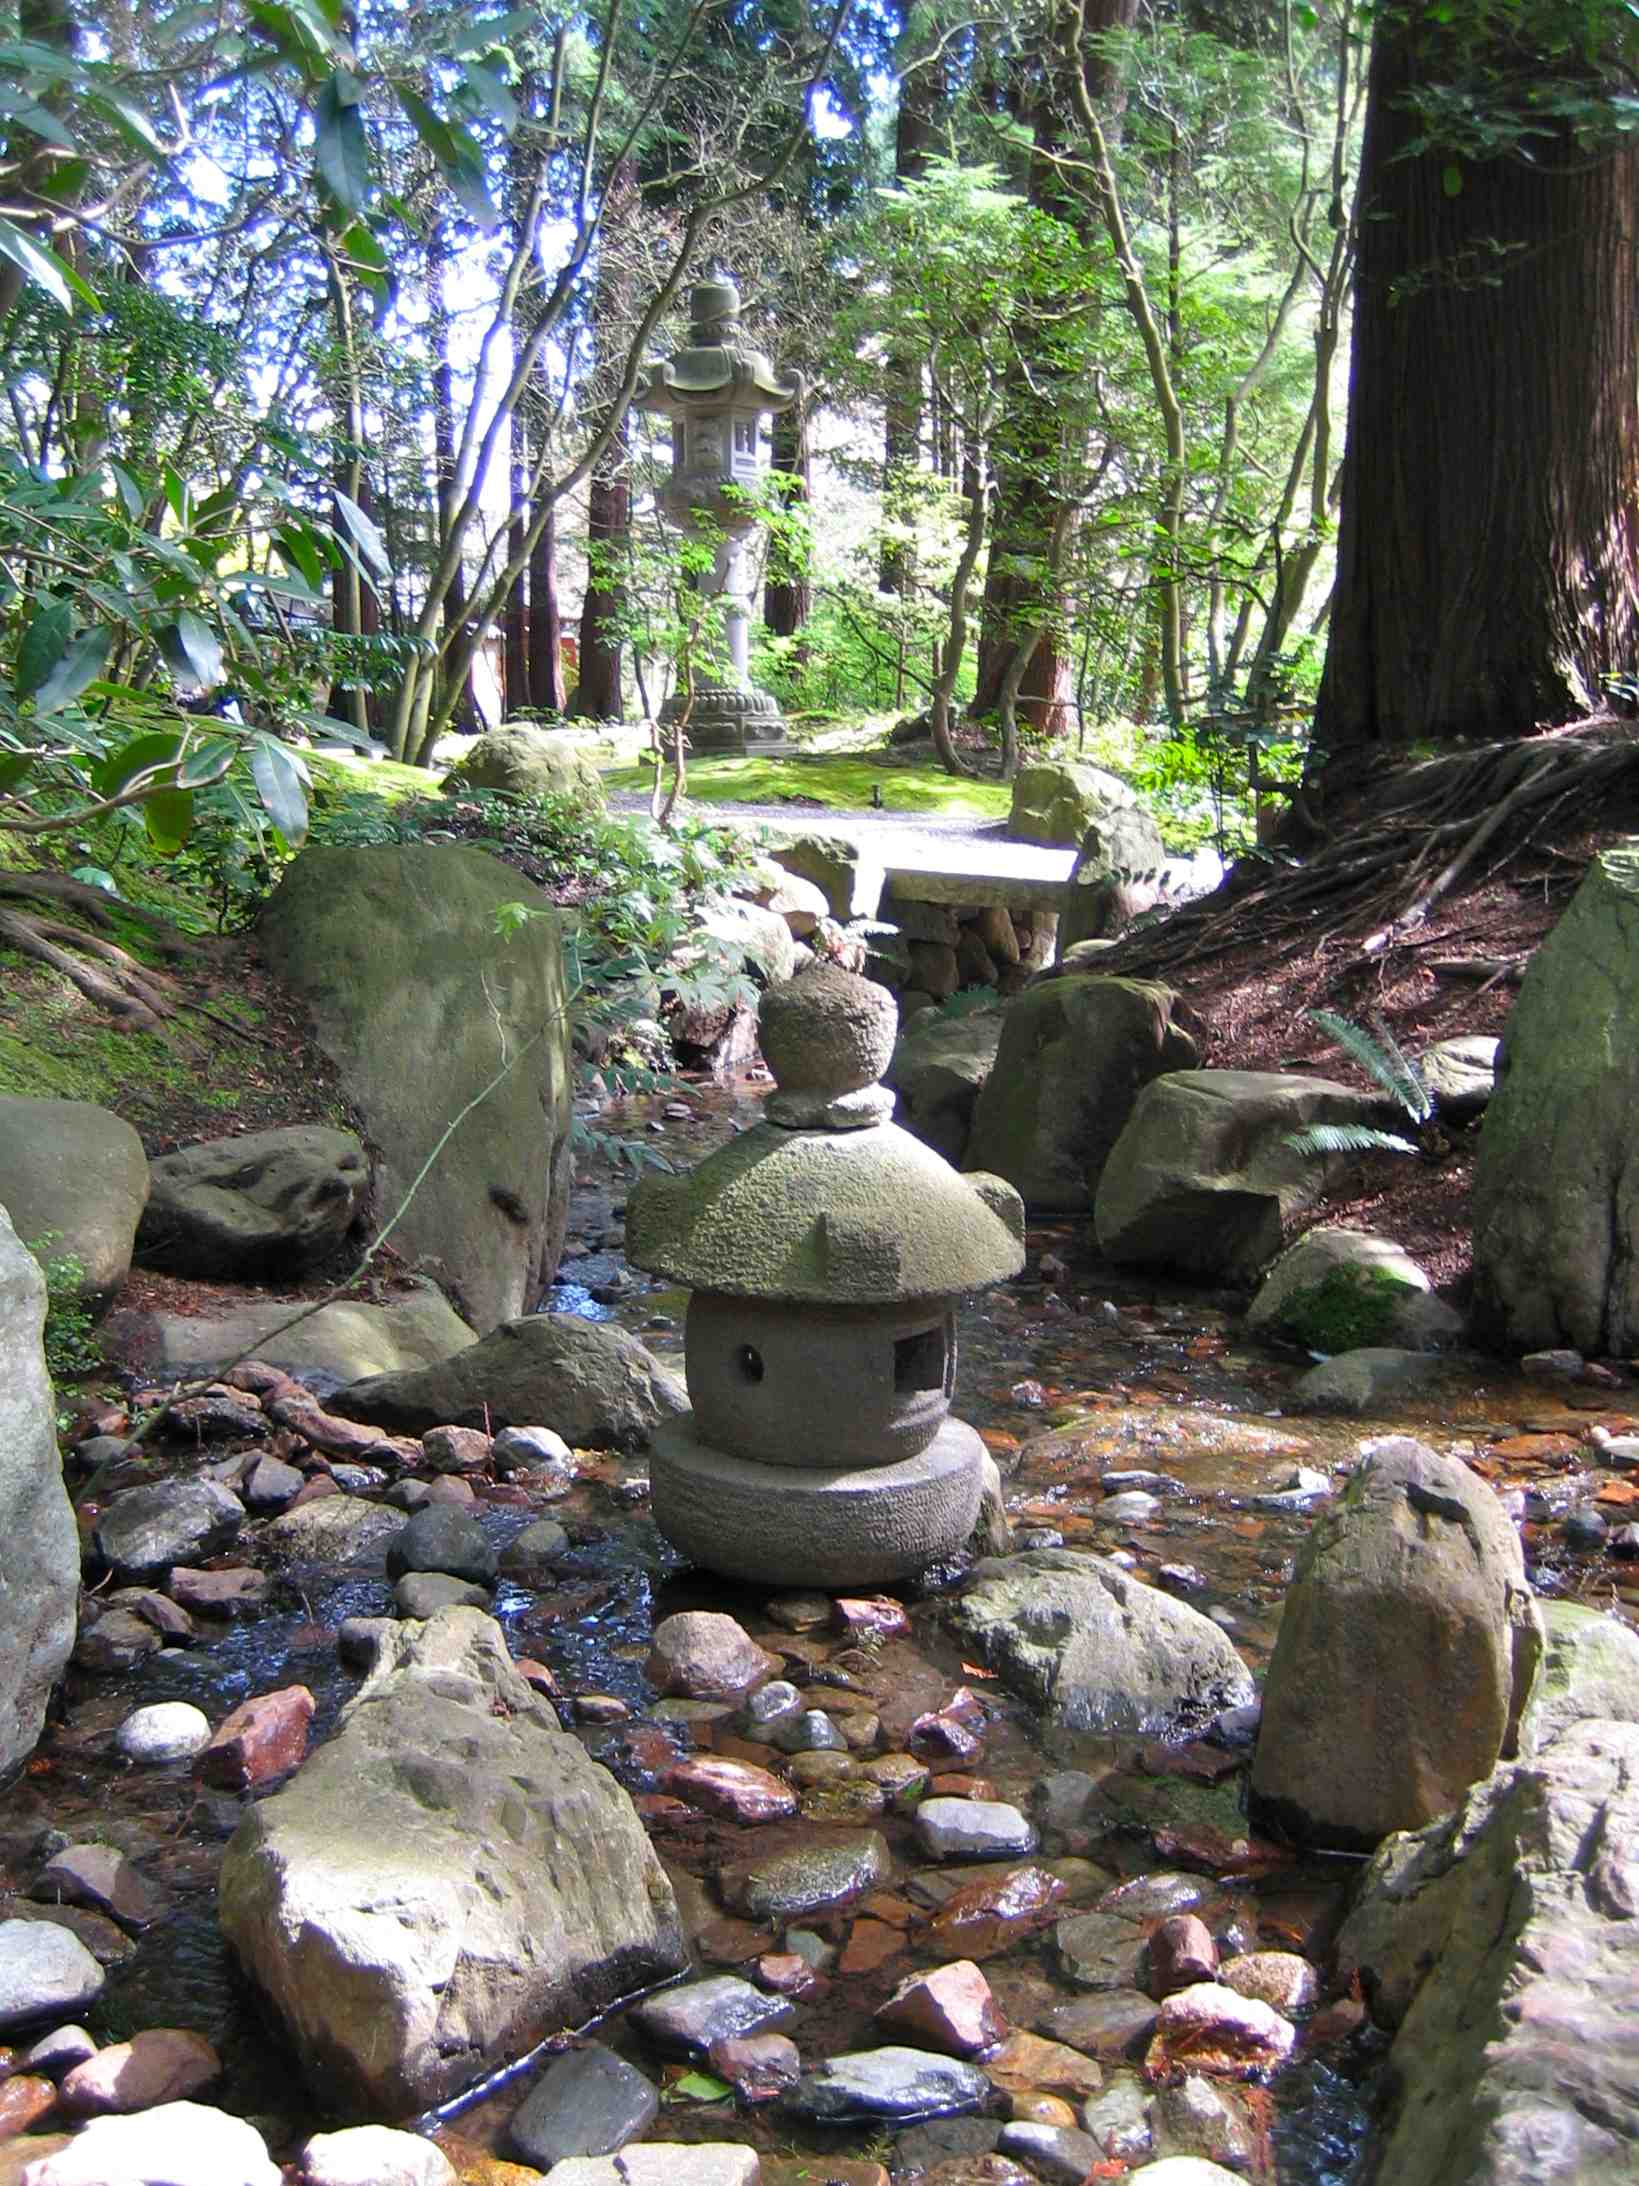 A Landscapeu2019s Story The Nitobe Memorial Garden | Ekostories